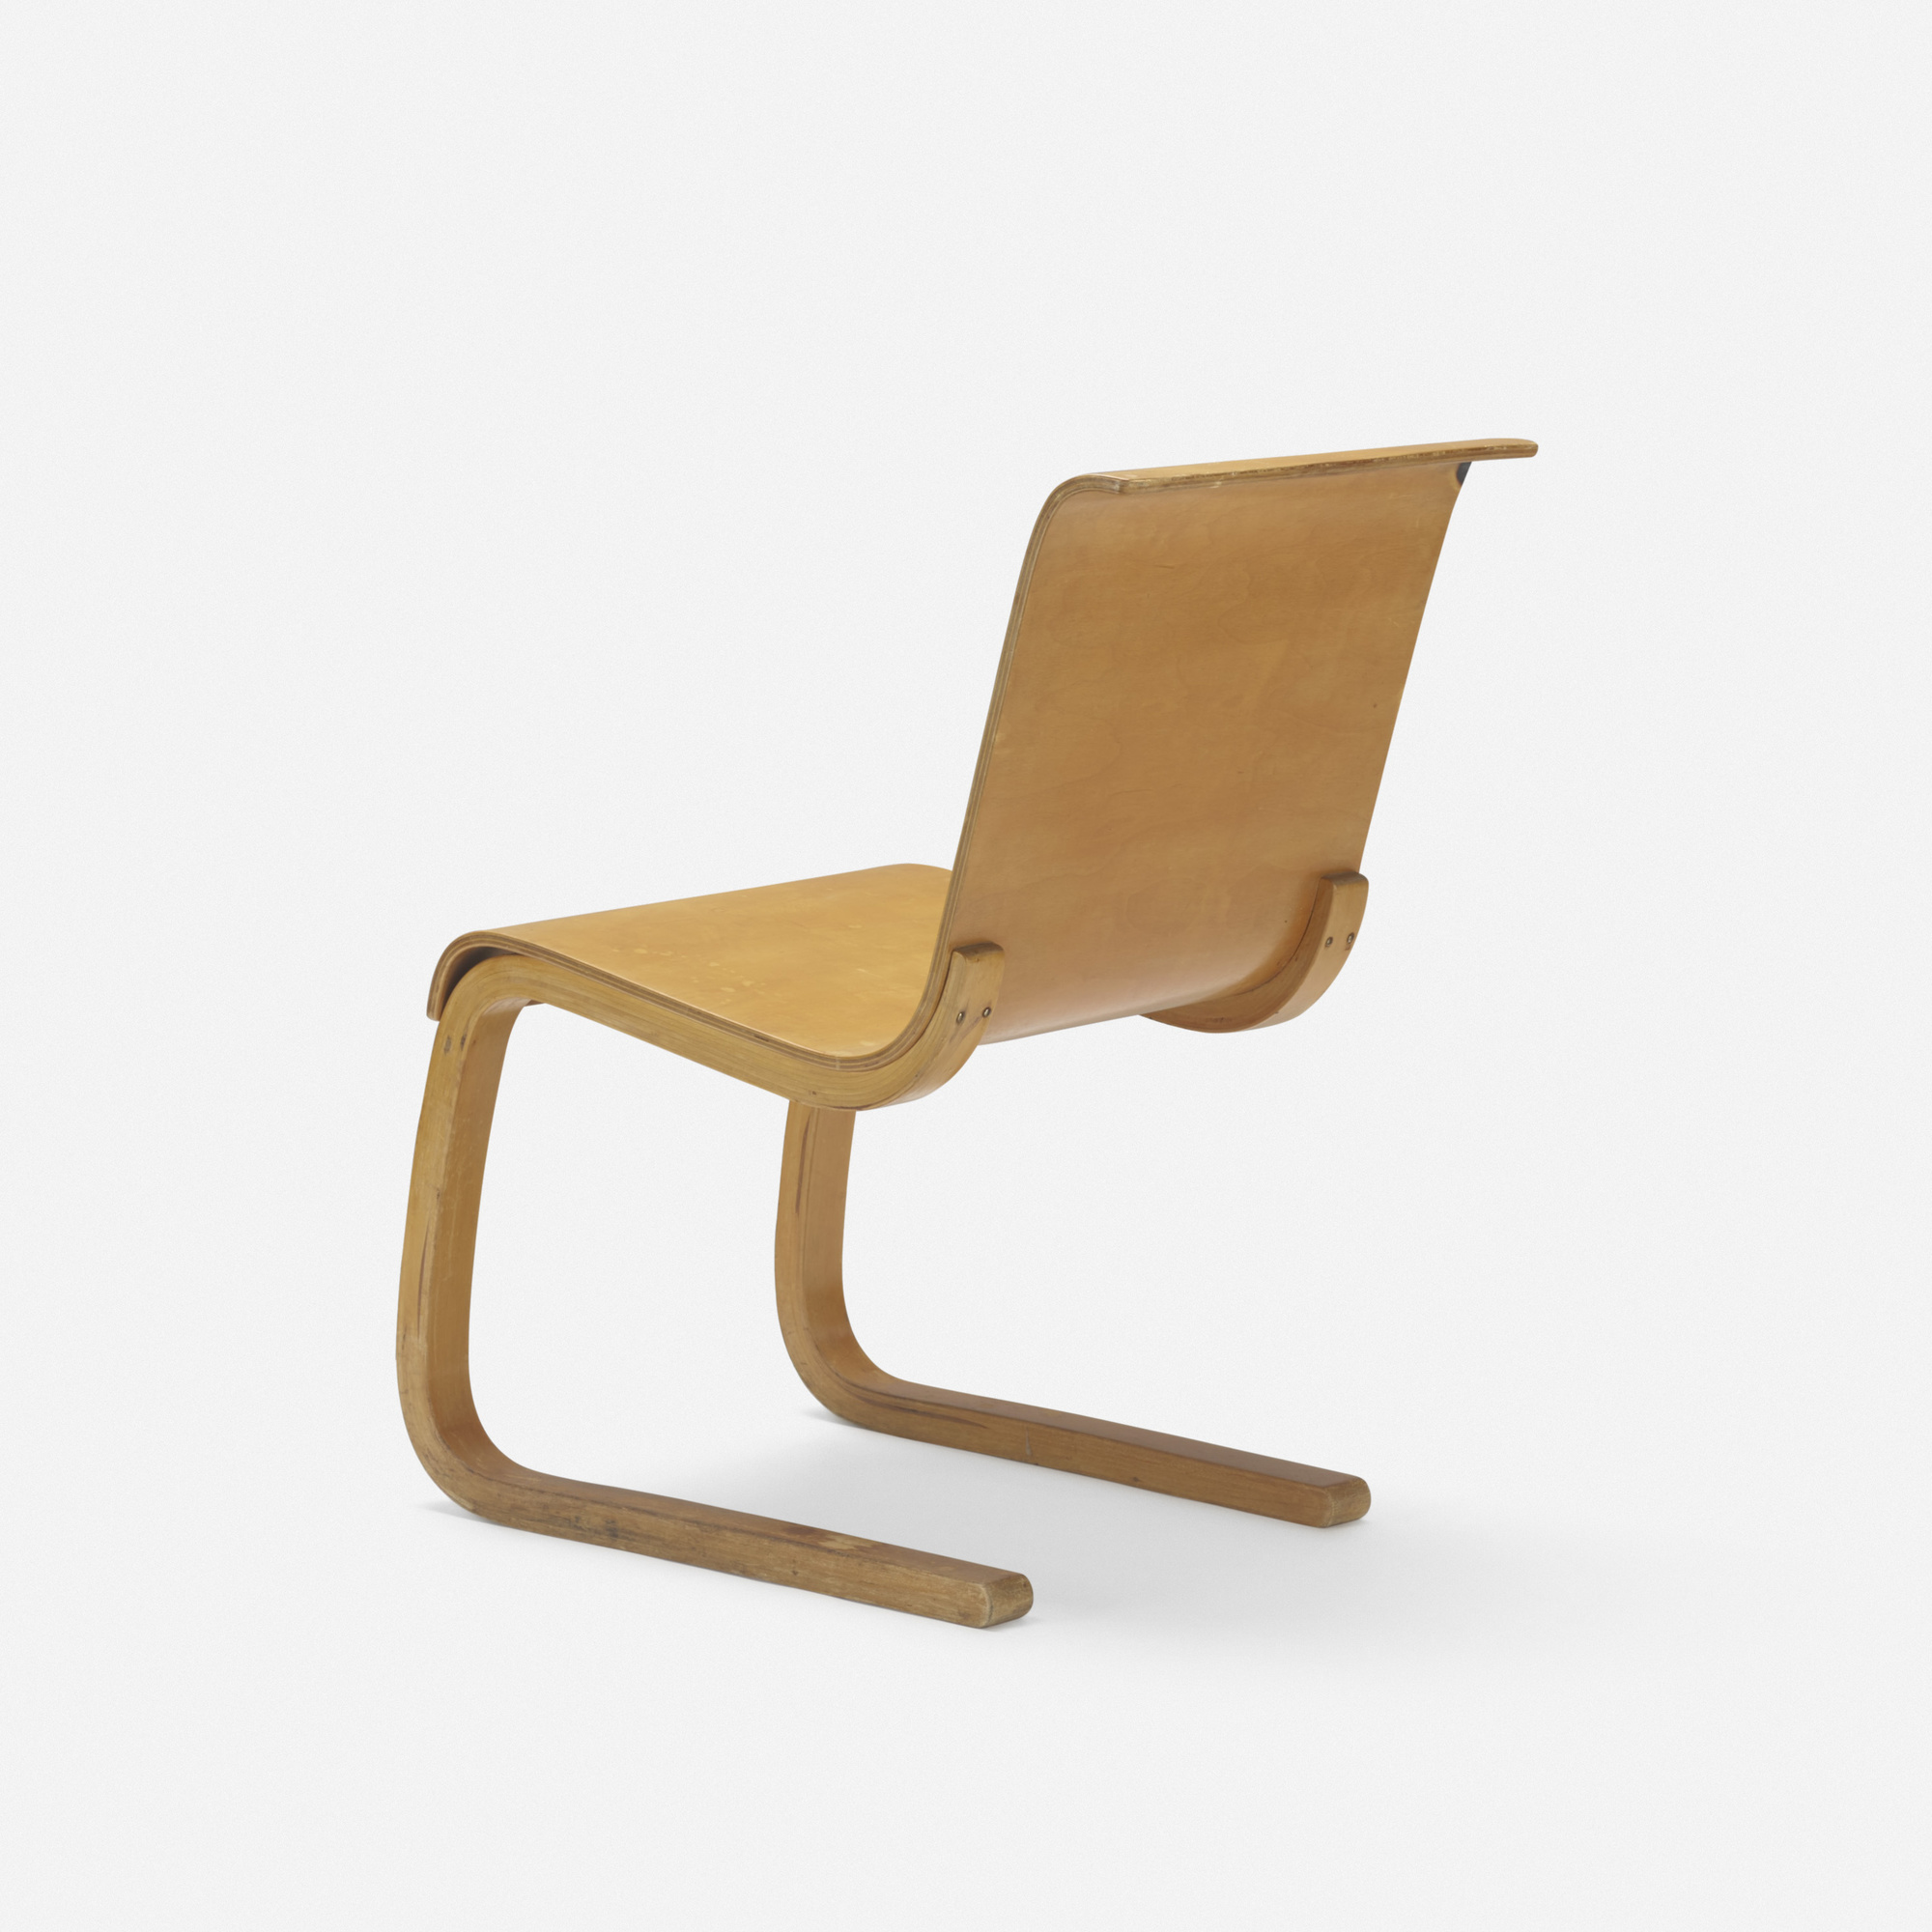 408: Alvar Aalto / early Cantilever chair, model 21 (2 of 3)